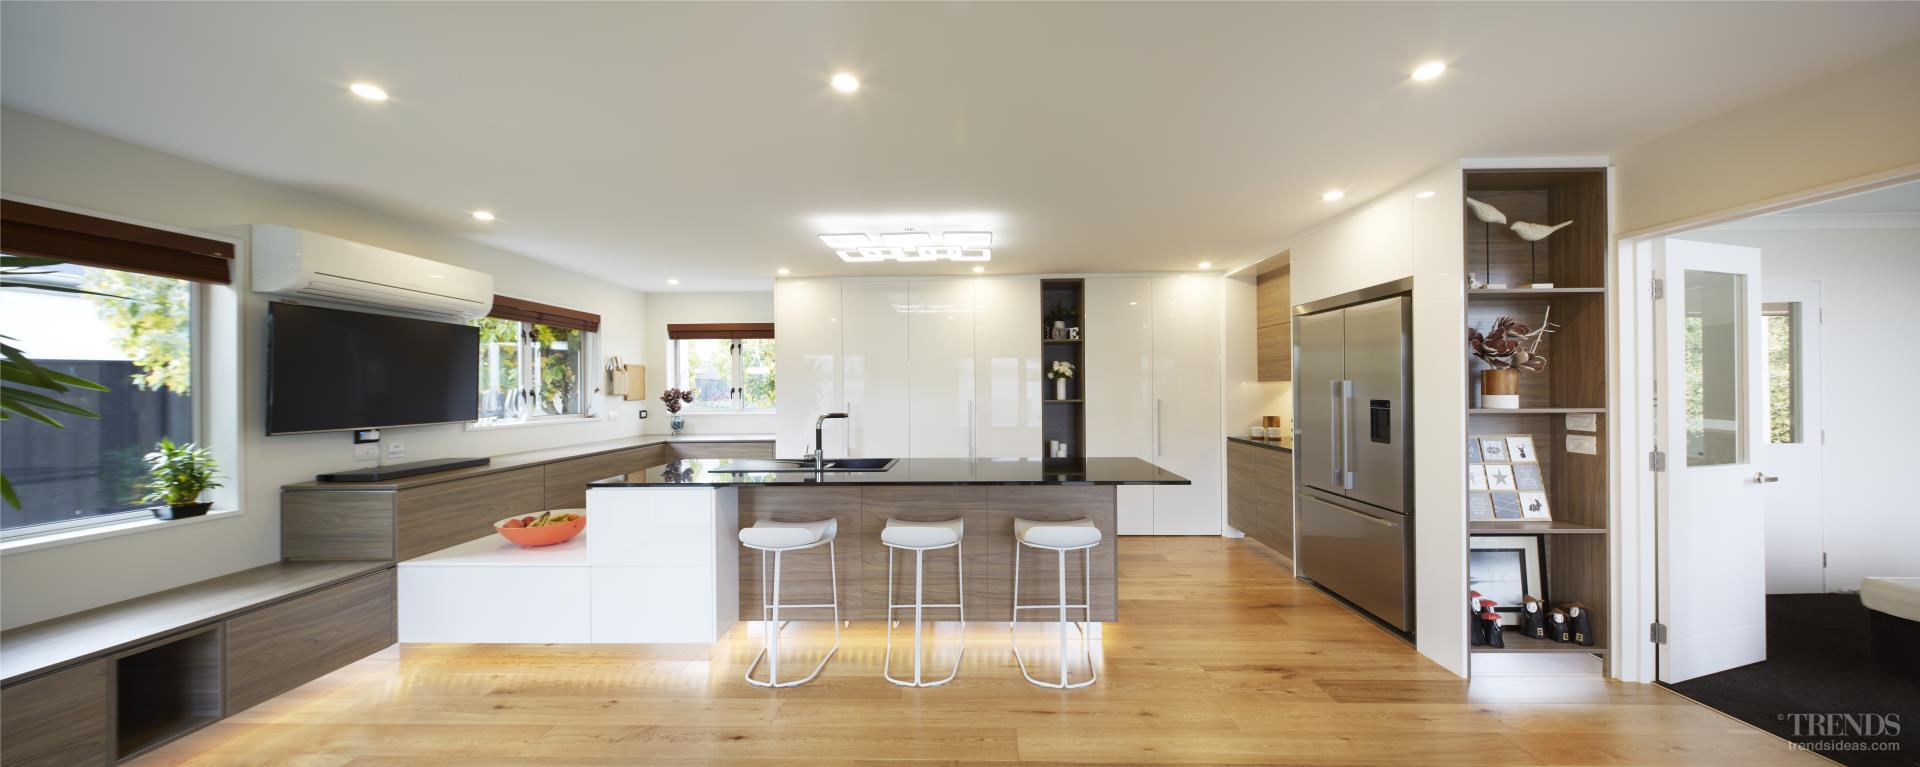 This new kitchen combines luxury with the latest high-tech features